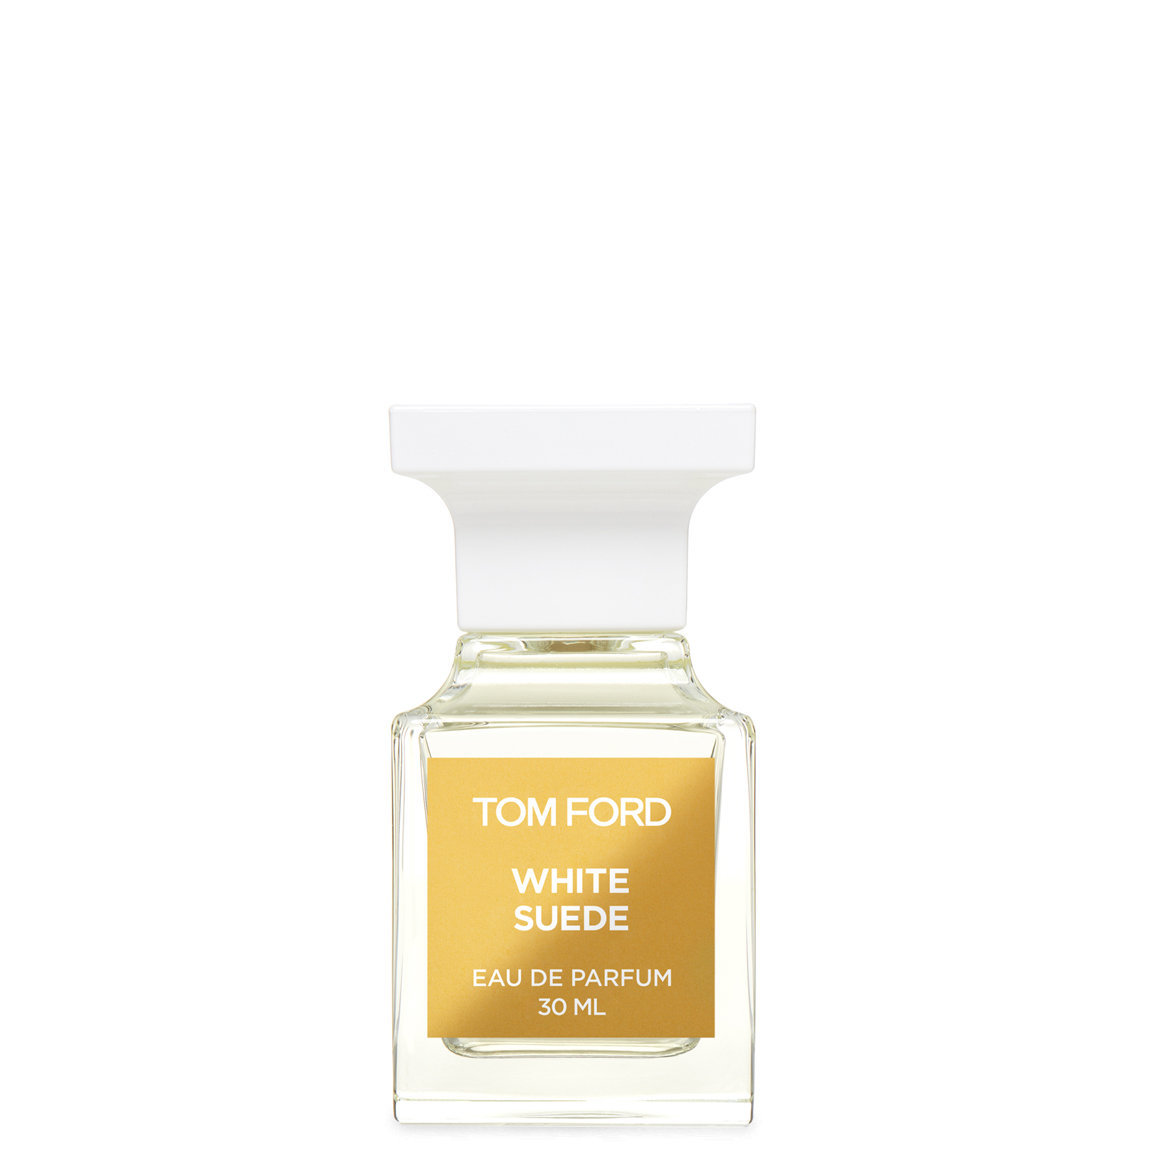 TOM FORD White Suede 30 ml product swatch.